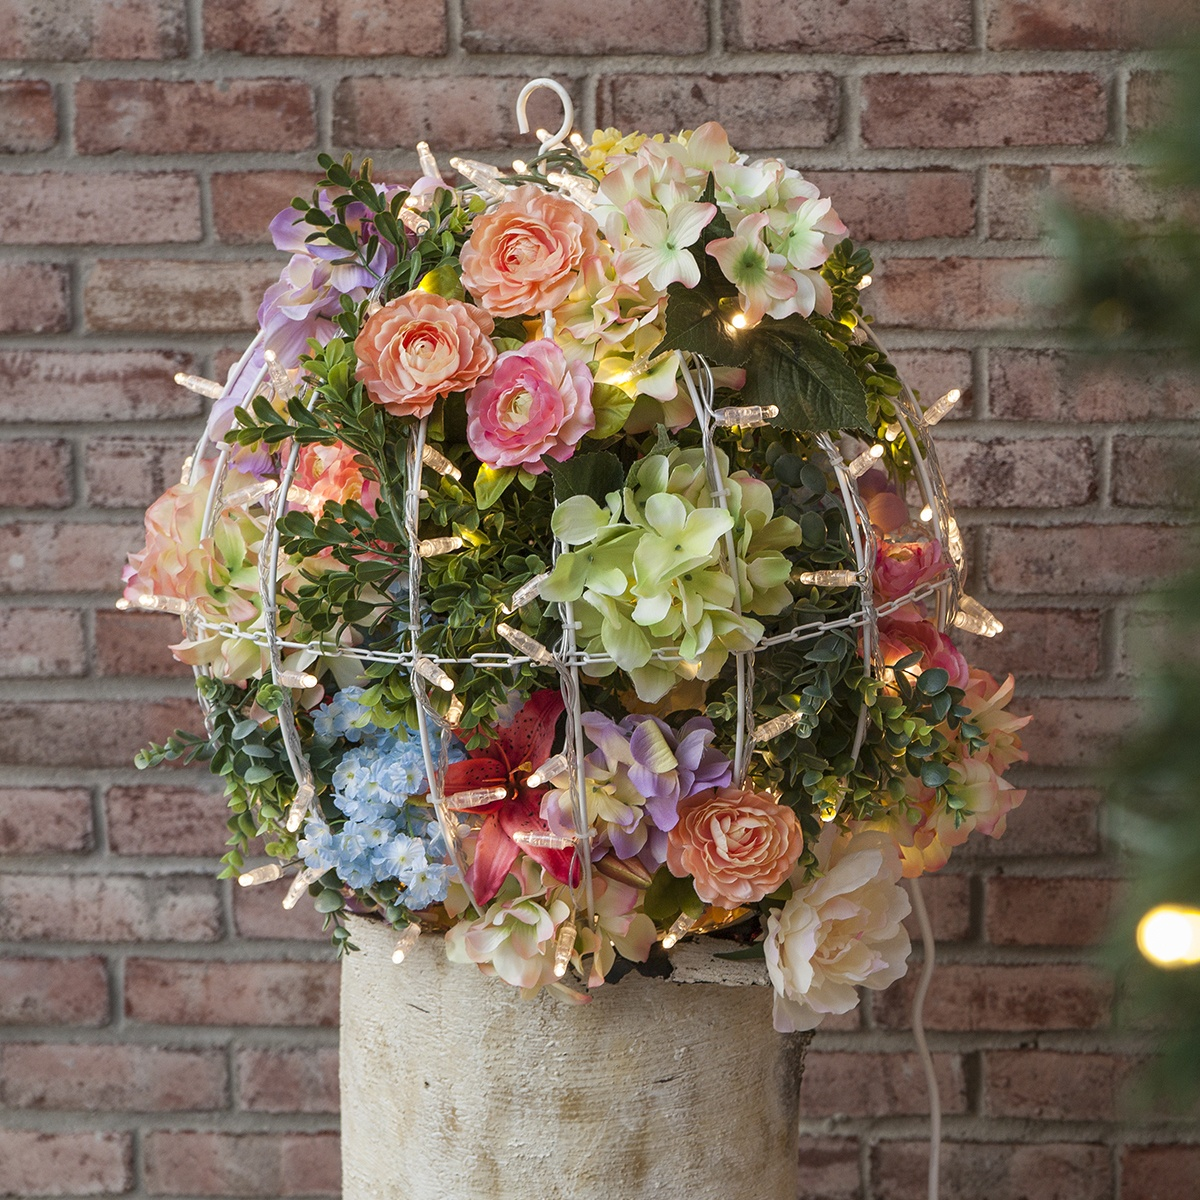 Use a bounty of bright flowers in place of Christmas accents to create a light ball bursting with the fresh colors and textures of spring!